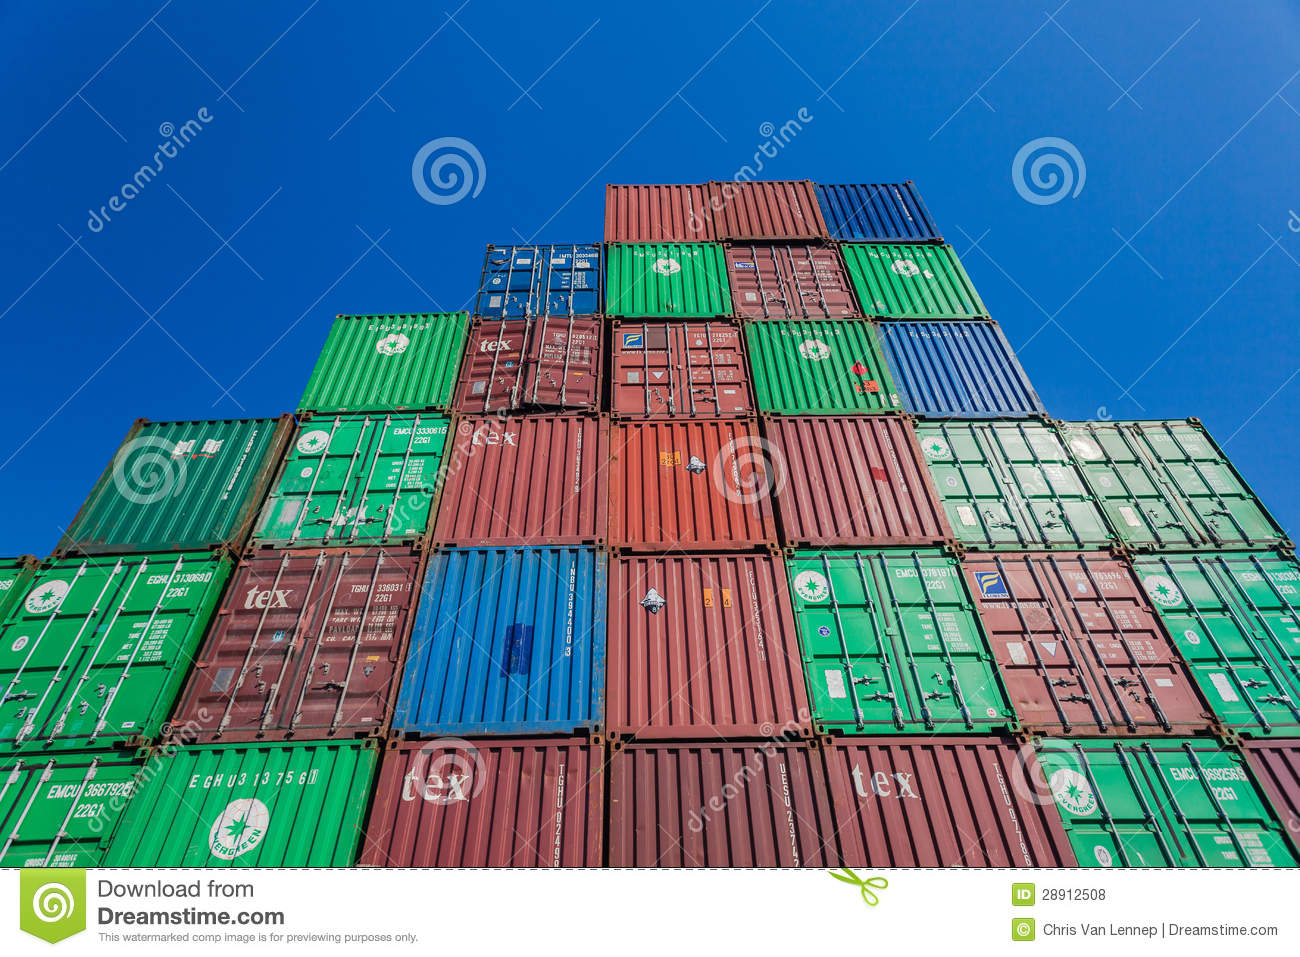 Containers stapelen